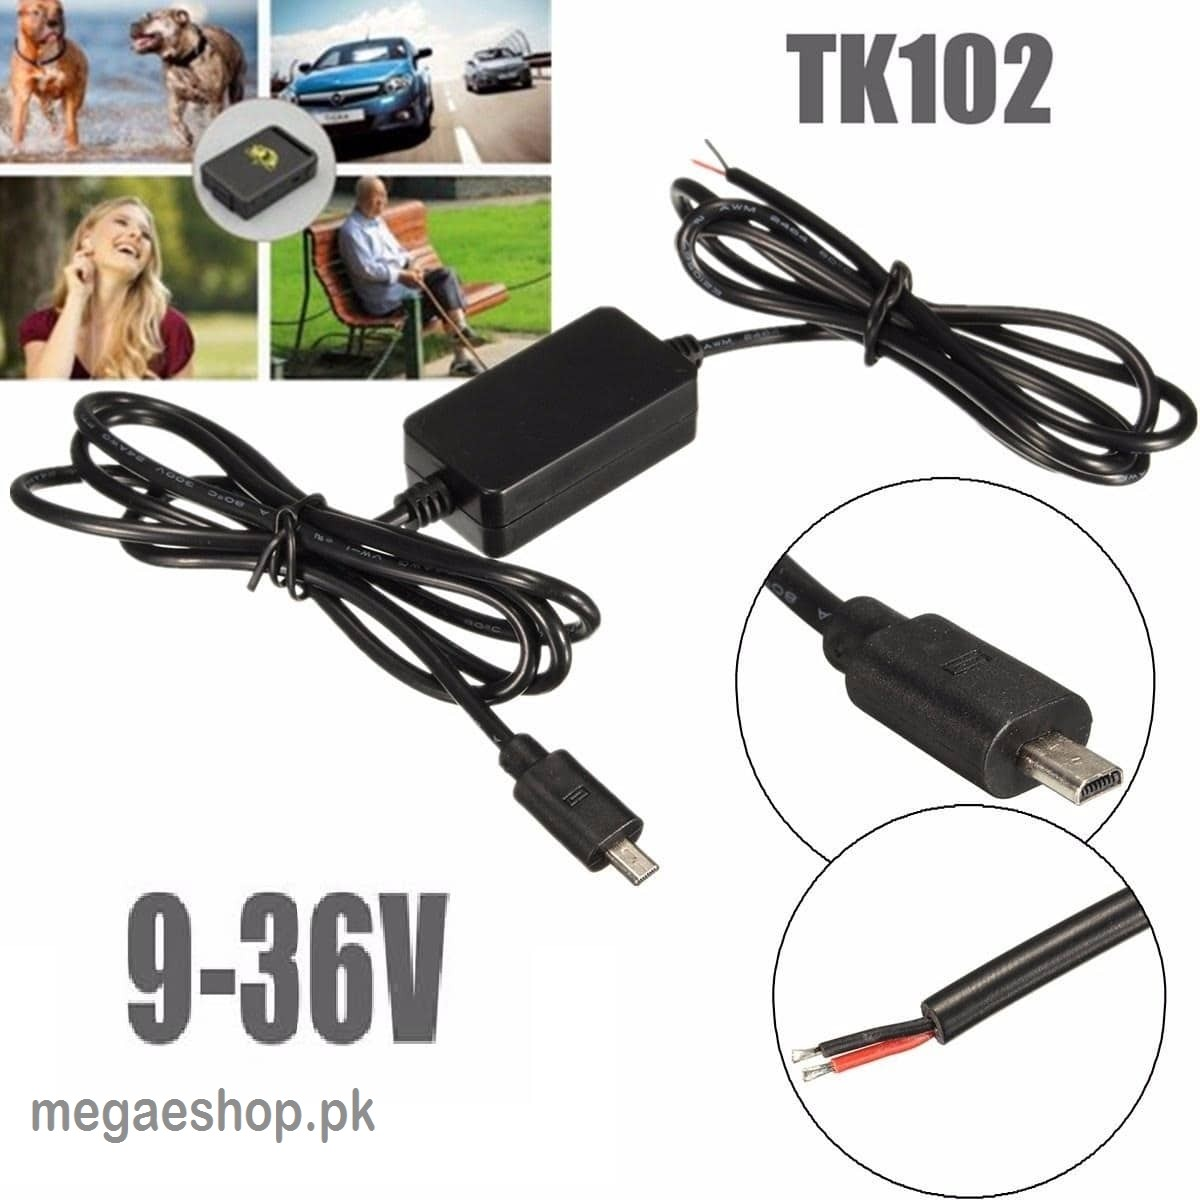 Car Power Supply 12V Charger Cable for TK-102 GPS Tracker Charger Cable Black